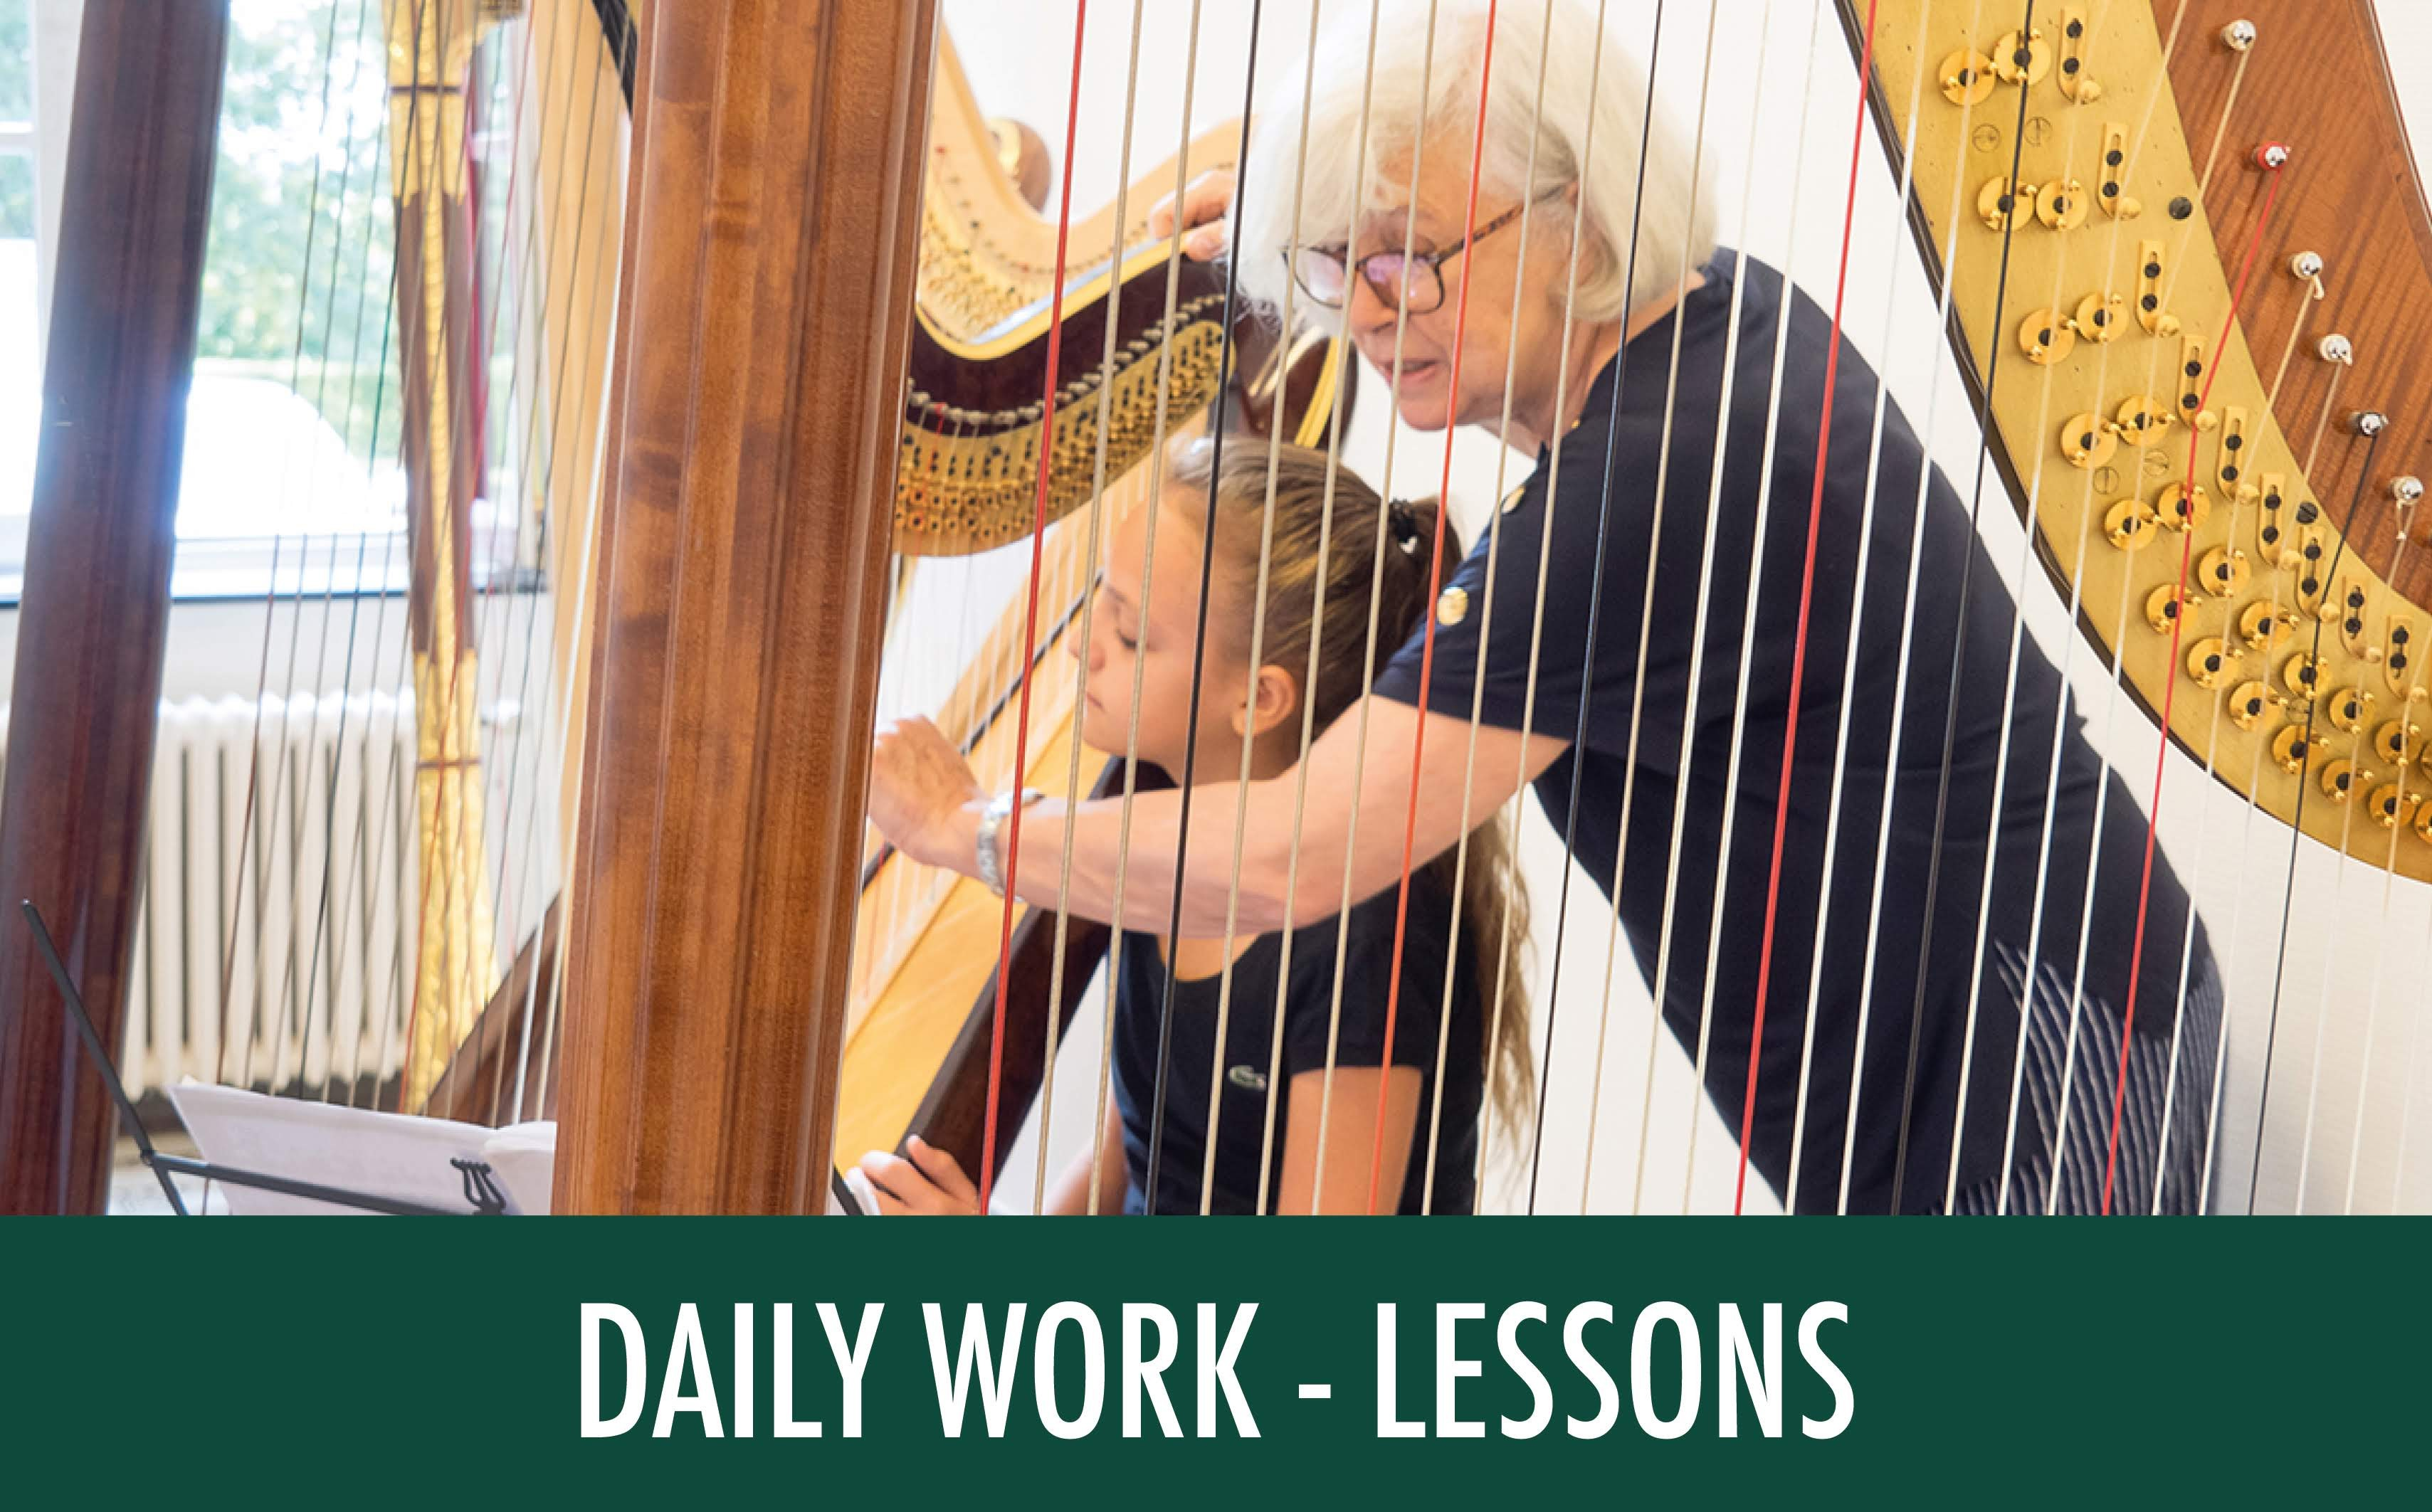 DAILY WORK - LESSONS